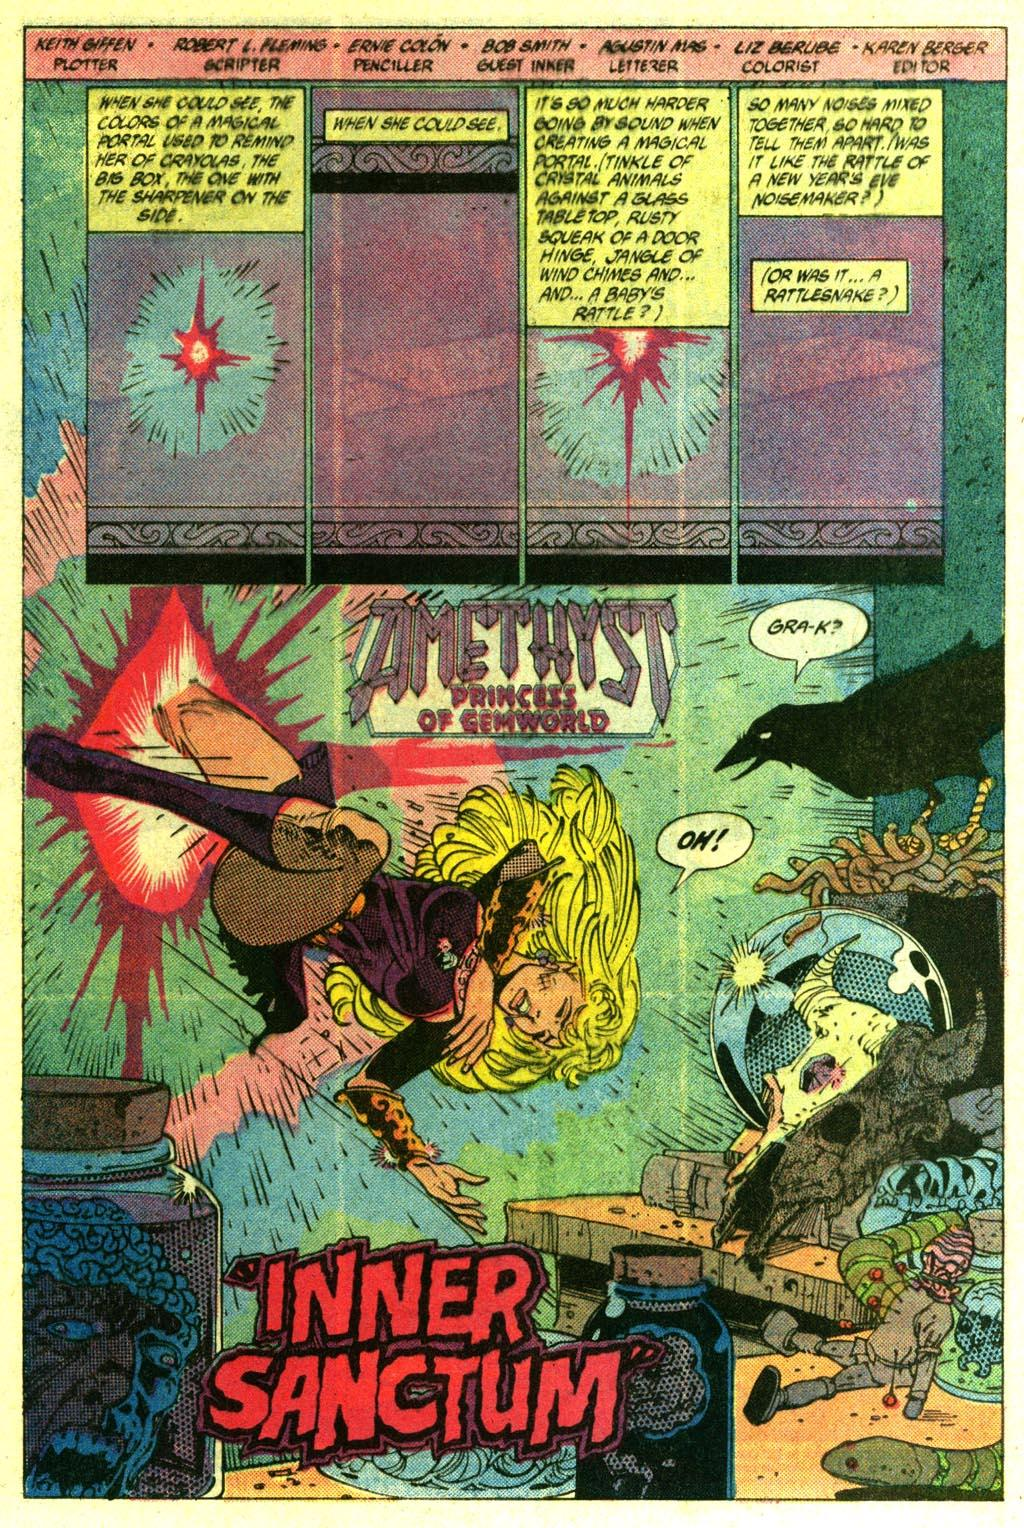 Amethyst (1985) #14 pg2, penciled by Ernie Colon, inked by Bob Smith, & colored by Liz Berube.